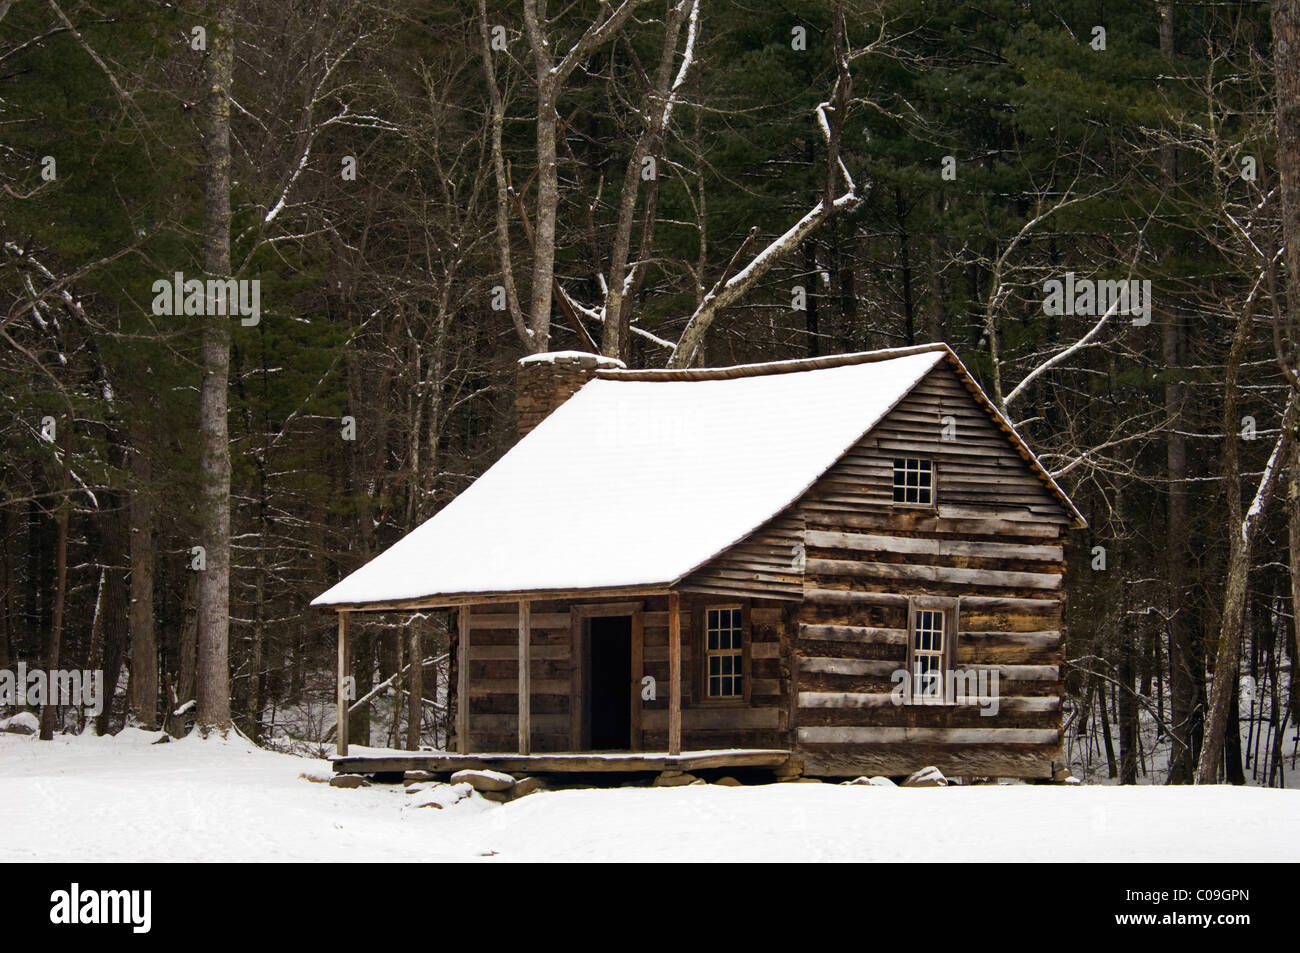 Carter Shields Cabin and Fresh Snow in Cades Cove in the Great Smoky Mountains National Park in Tennessee - Stock Image